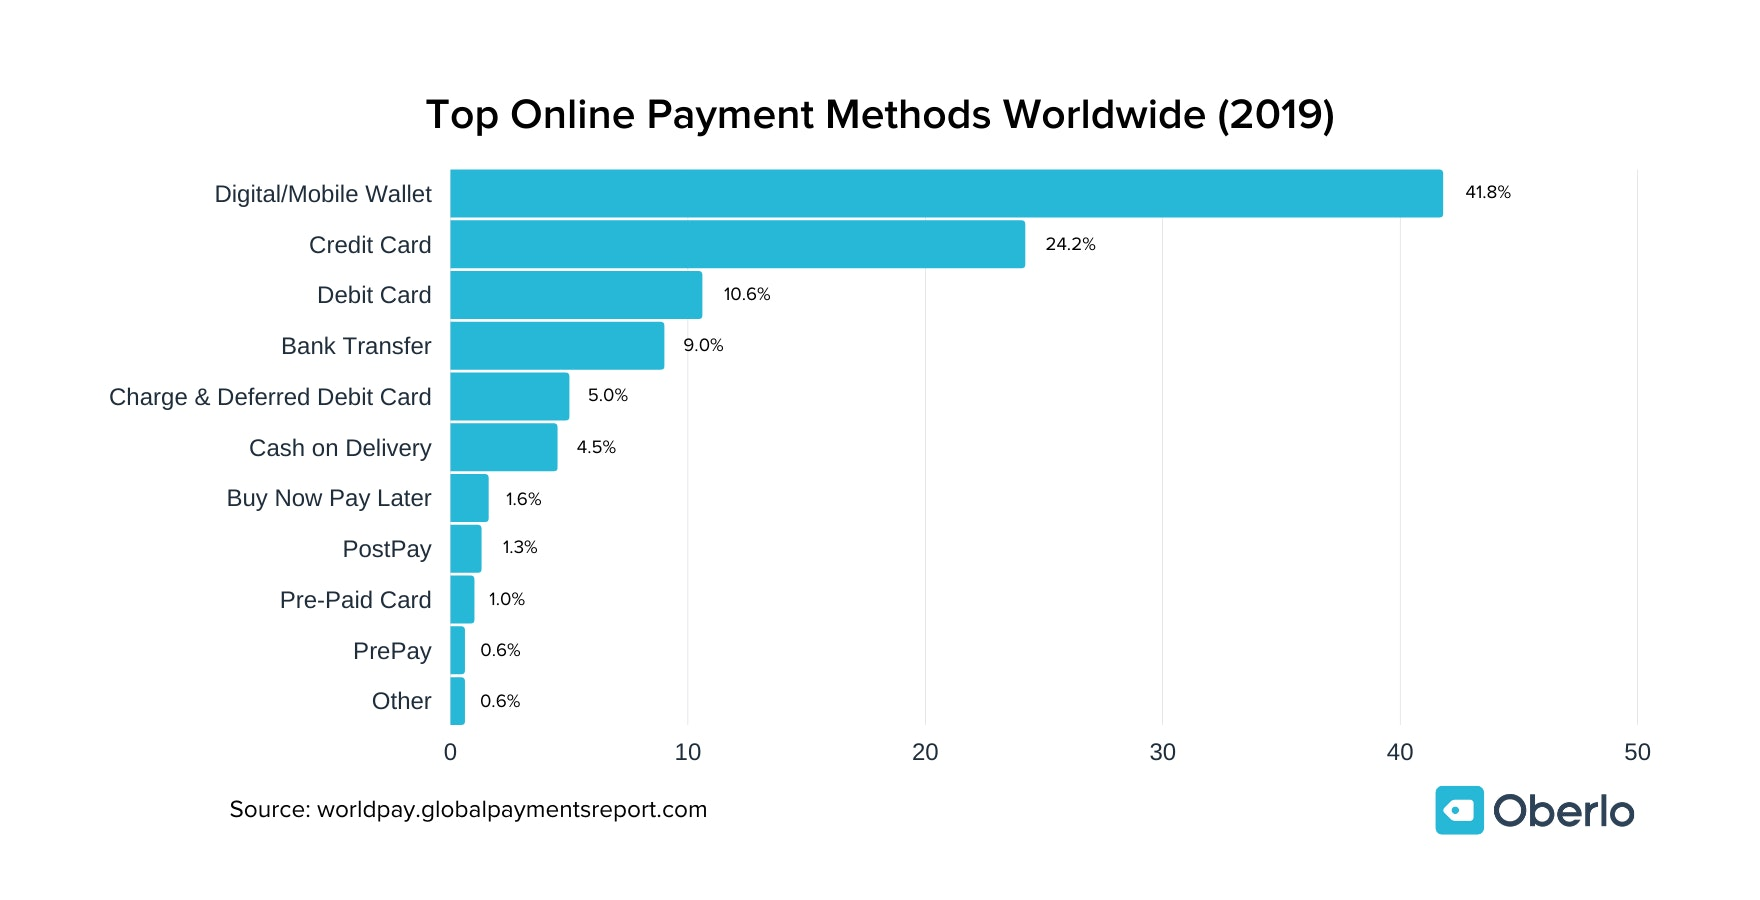 Top Online Payment Methods Worldwide (2019) chart